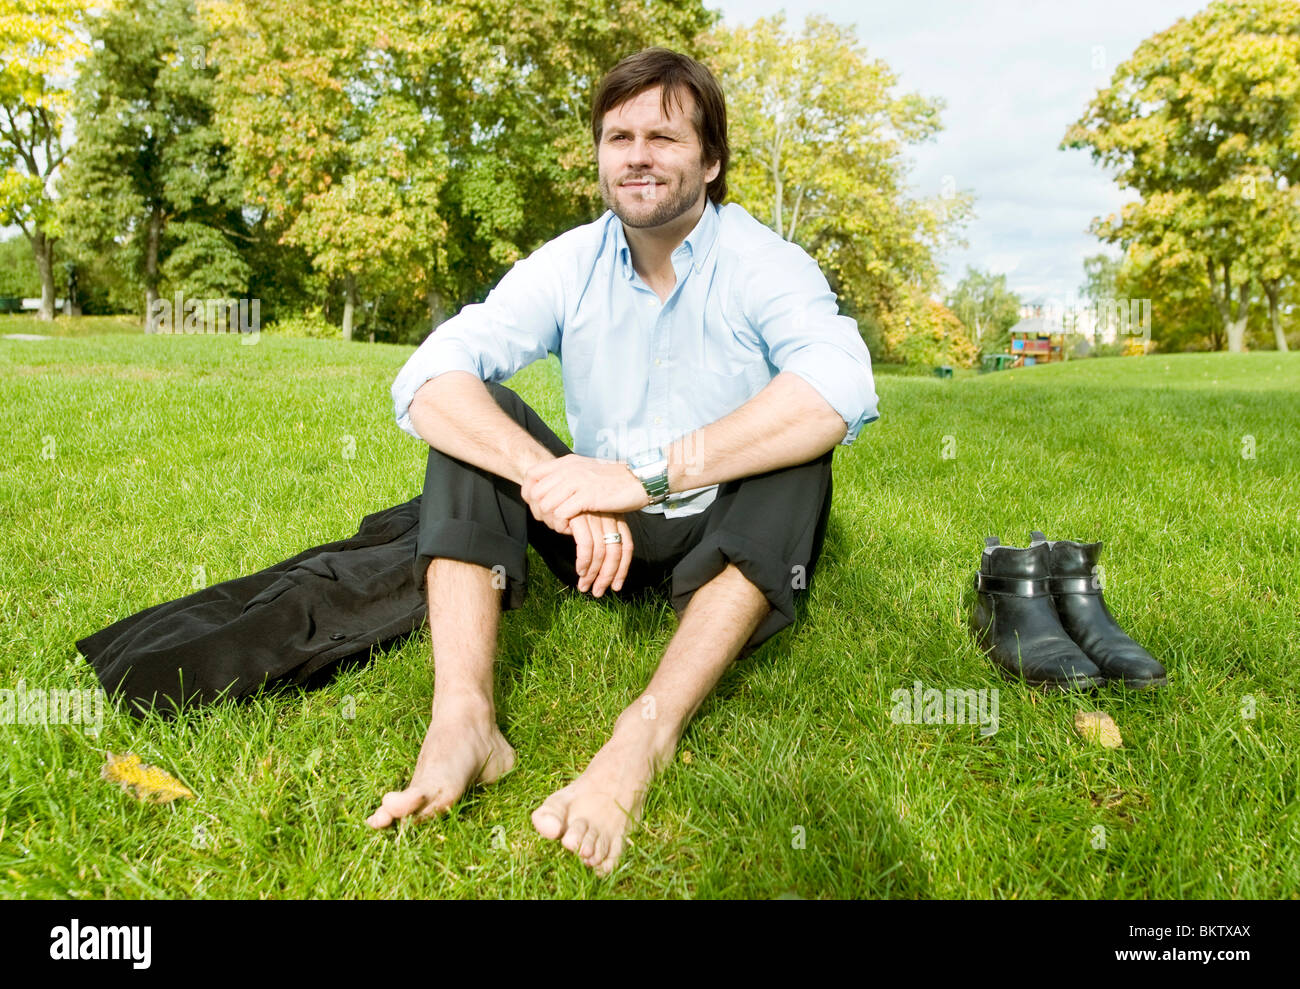 Man sitting bare foot on lawn - Stock Image